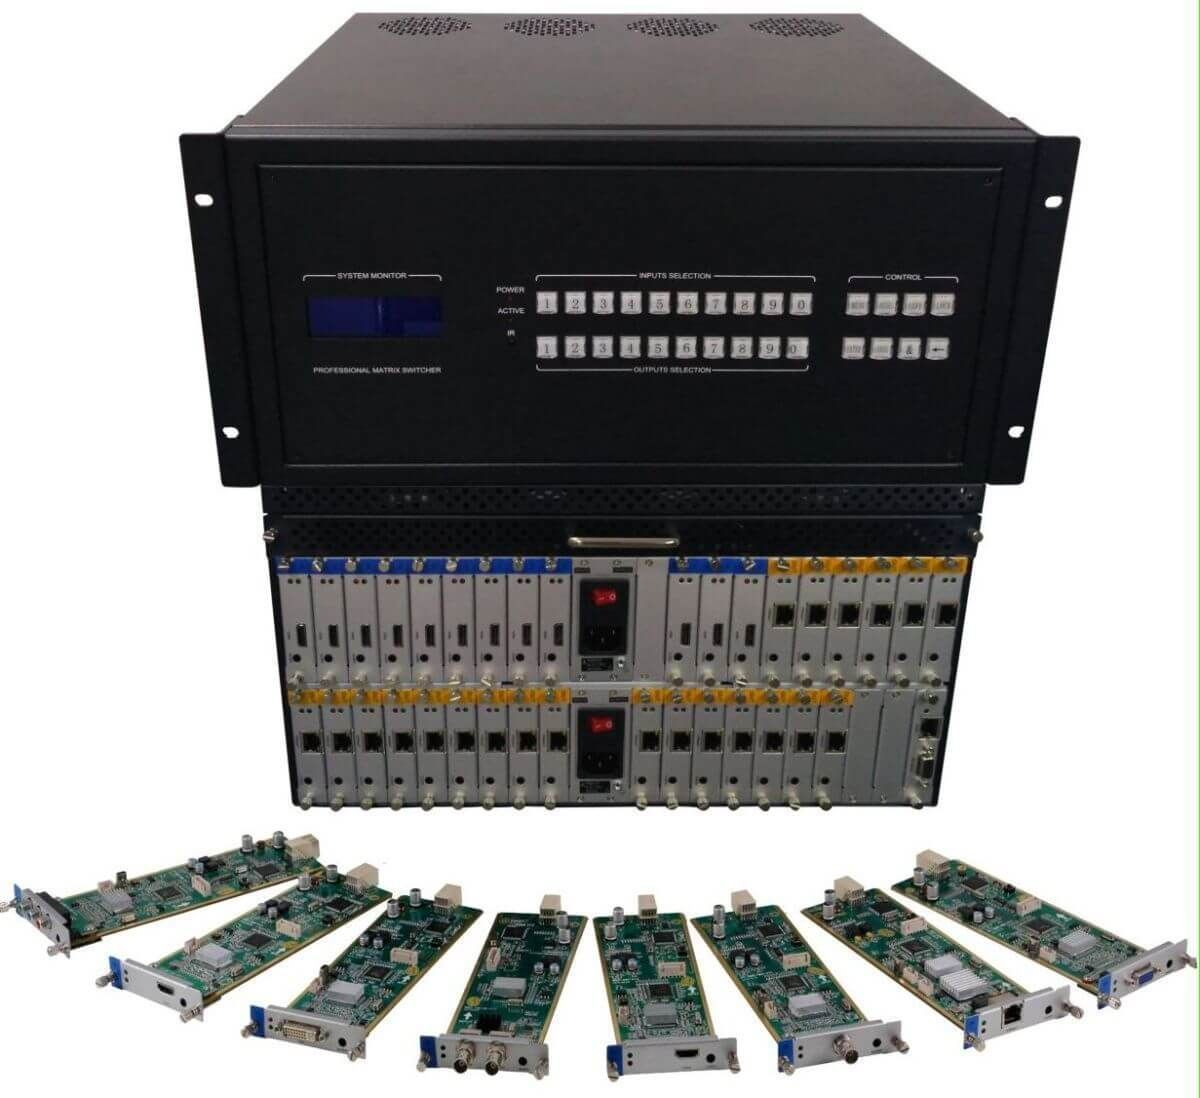 16x24 HDMI Matrix Switcher with Video Wall Processor